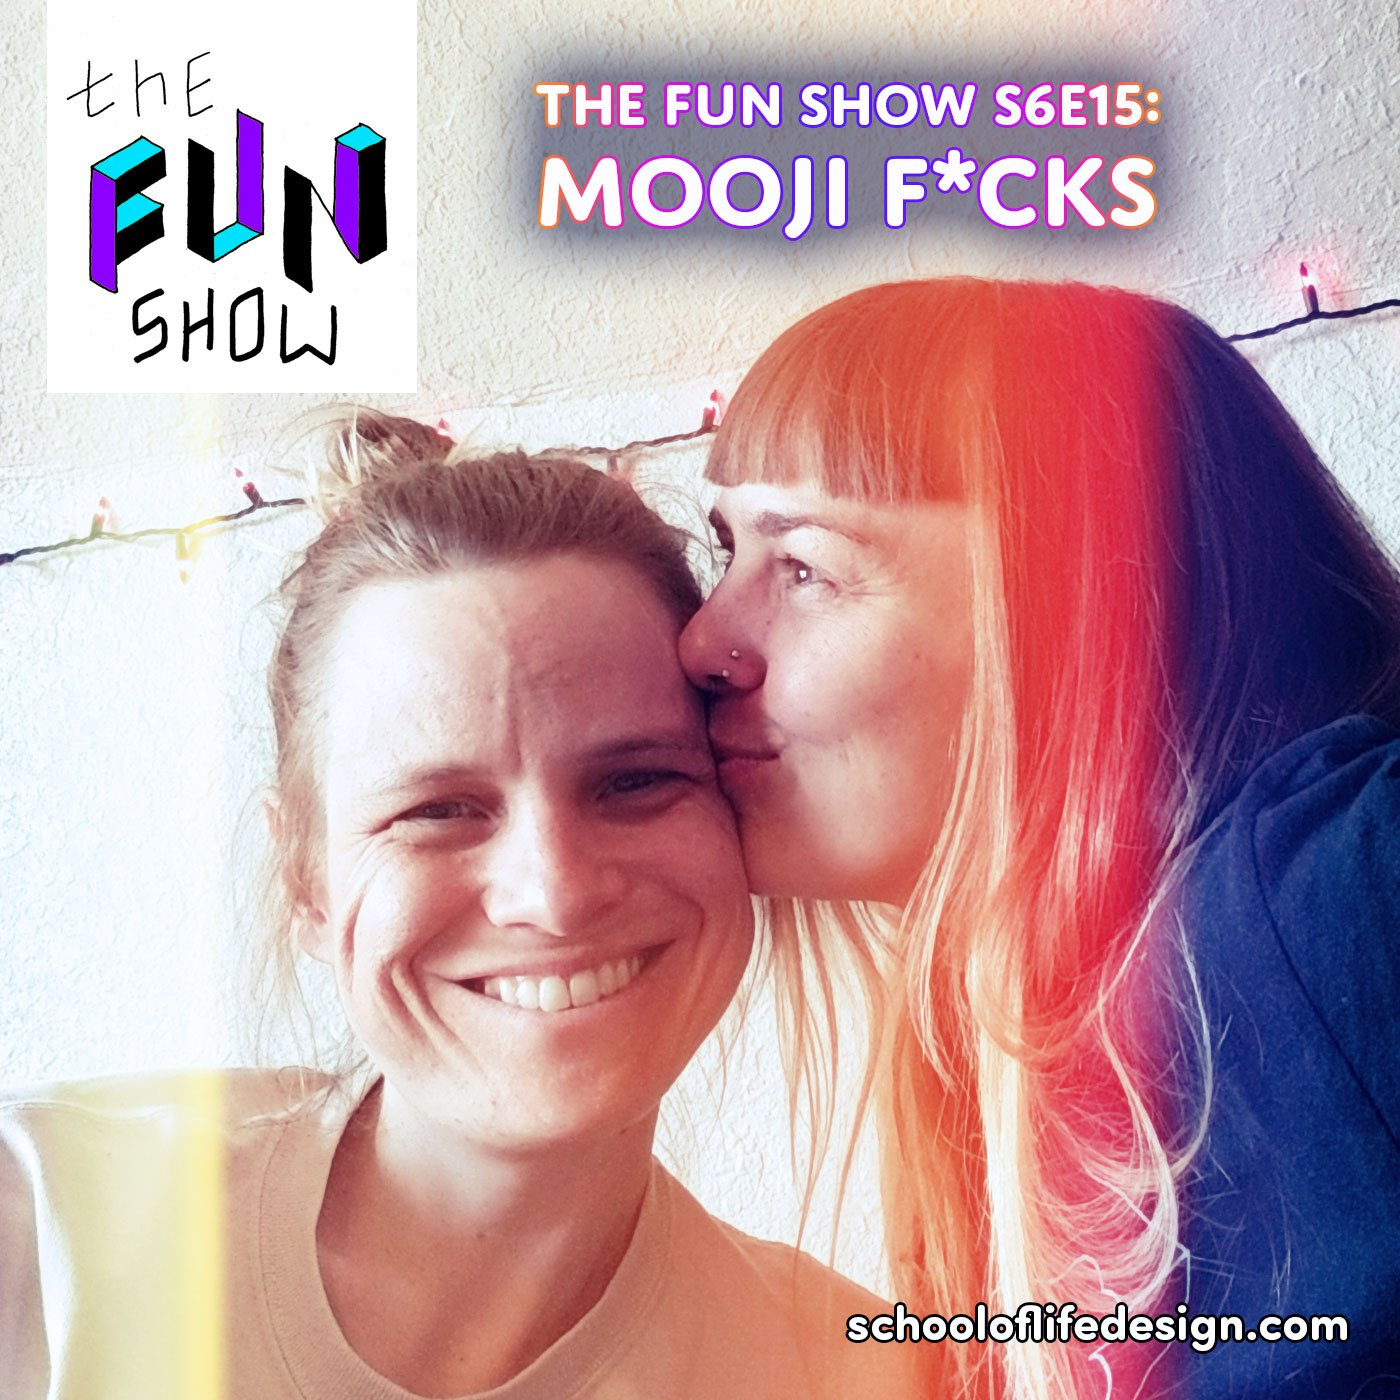 The Fun Show S6E15: Mooji F*cks